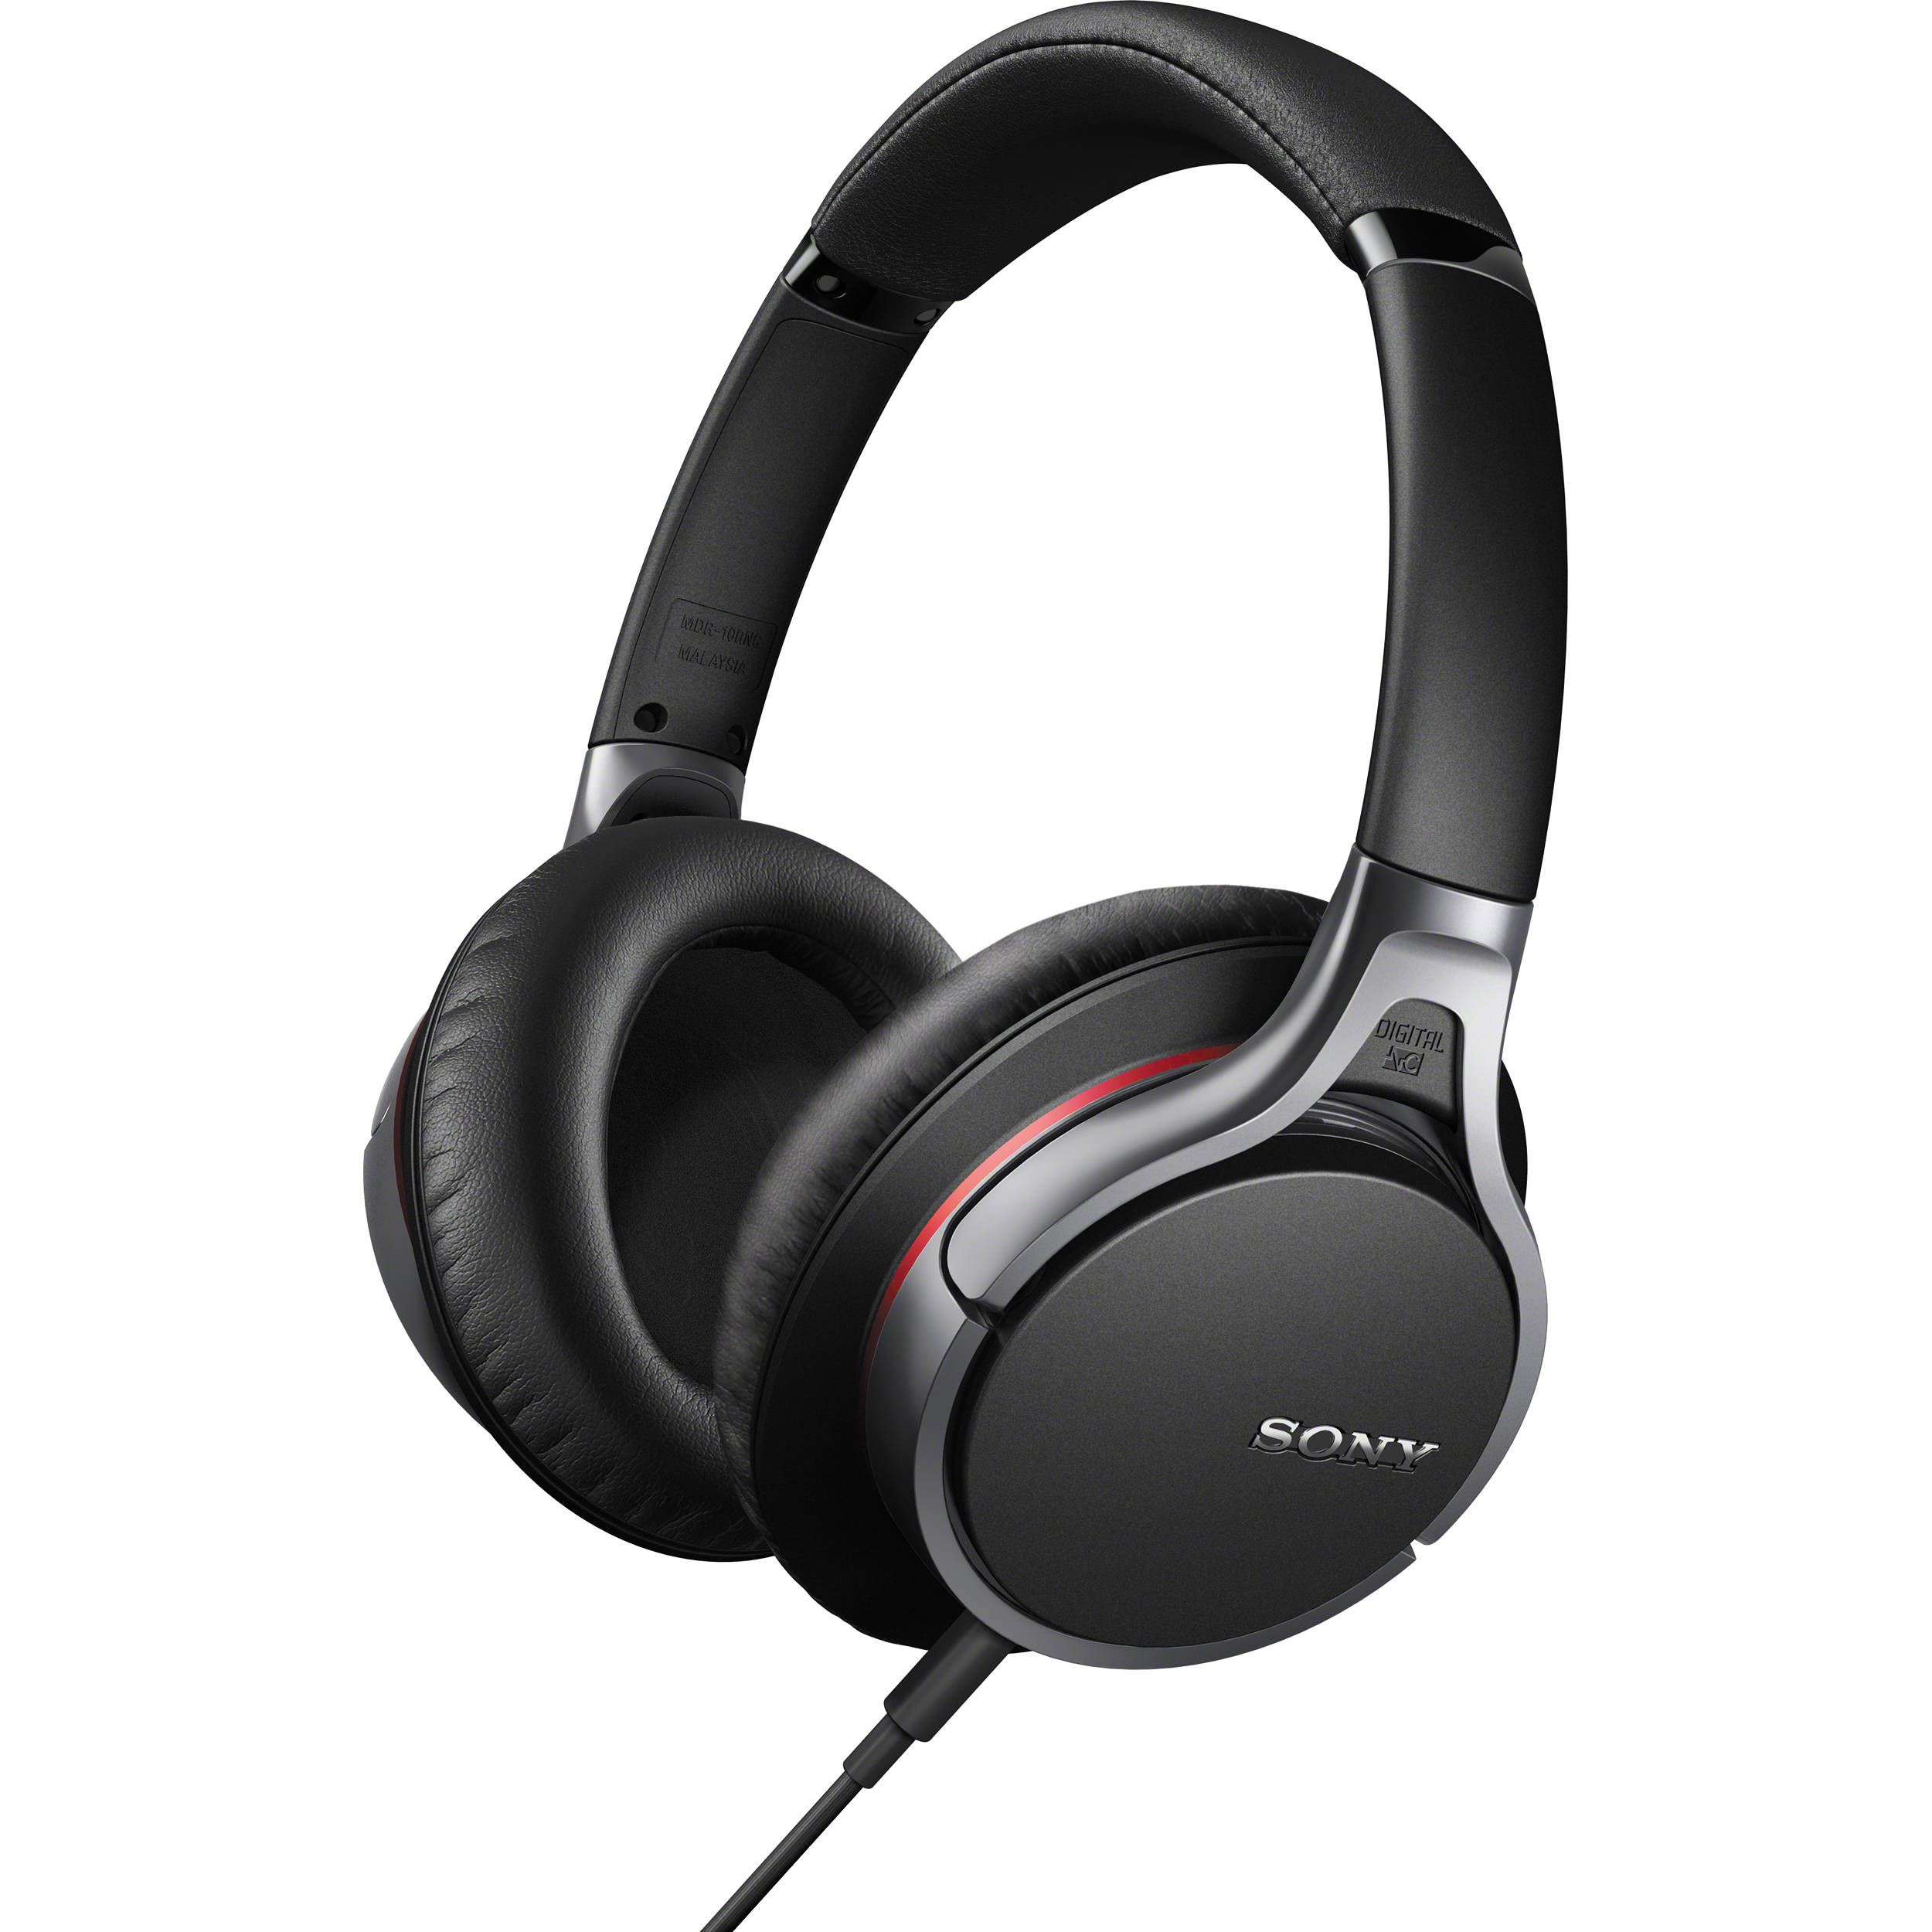 Noise cancelling earbuds pc - sony headphones noise cancelling earbuds